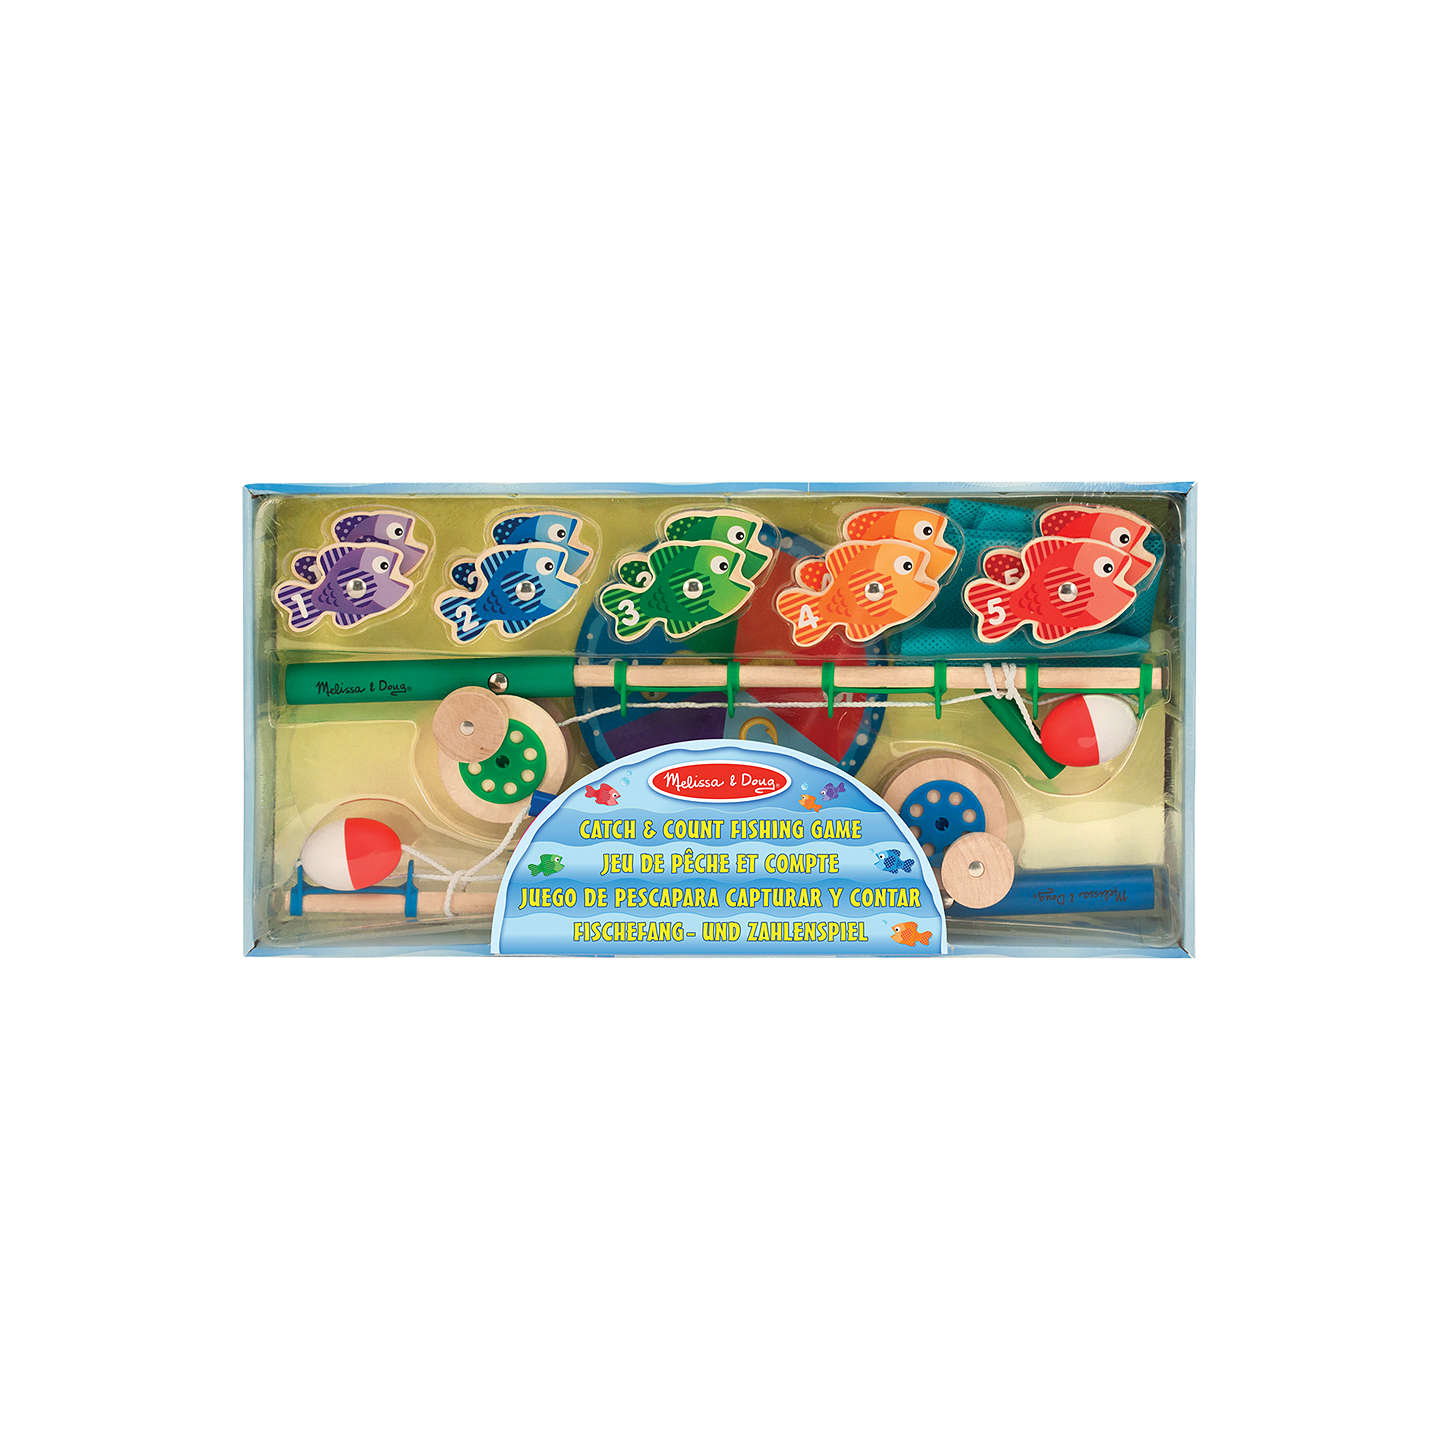 Melissa doug catch count fishing game at john lewis for Catch and count fishing game